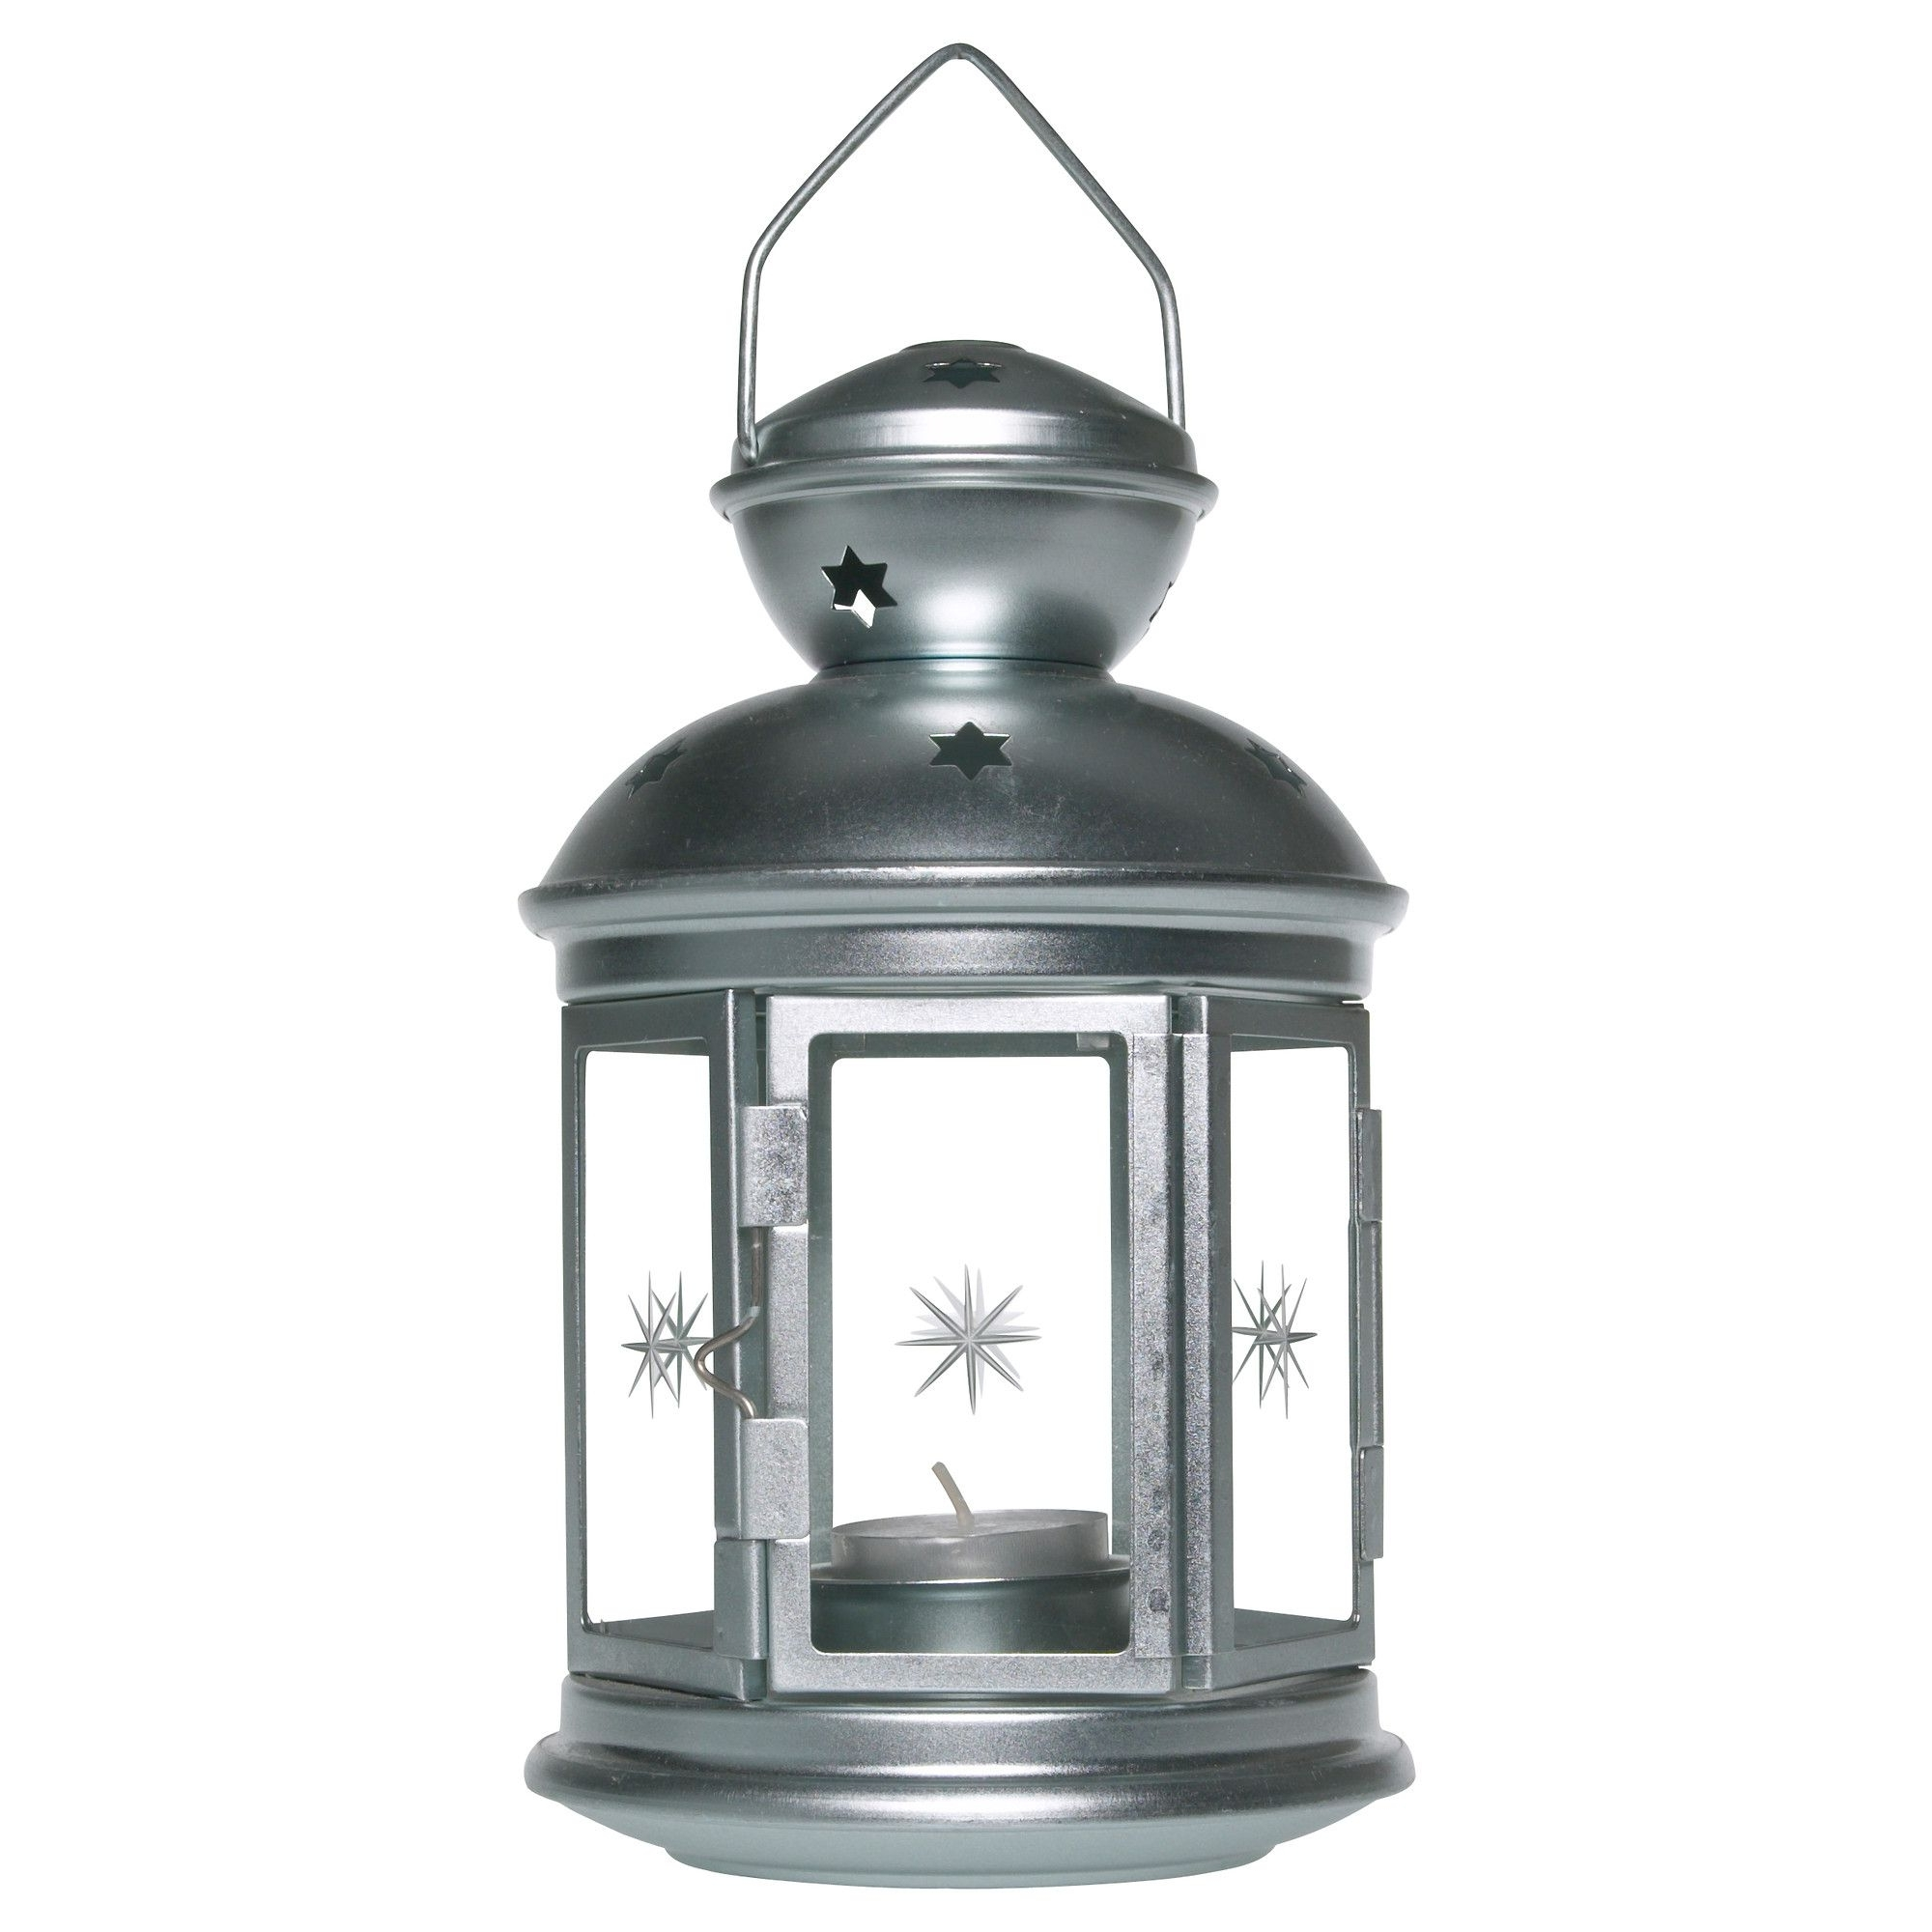 Rotera Lantern For Tealight, Galvanized Indoor/outdoor Galvanized Pertaining To Current Hanging Outdoor Tea Light Lanterns (View 15 of 20)